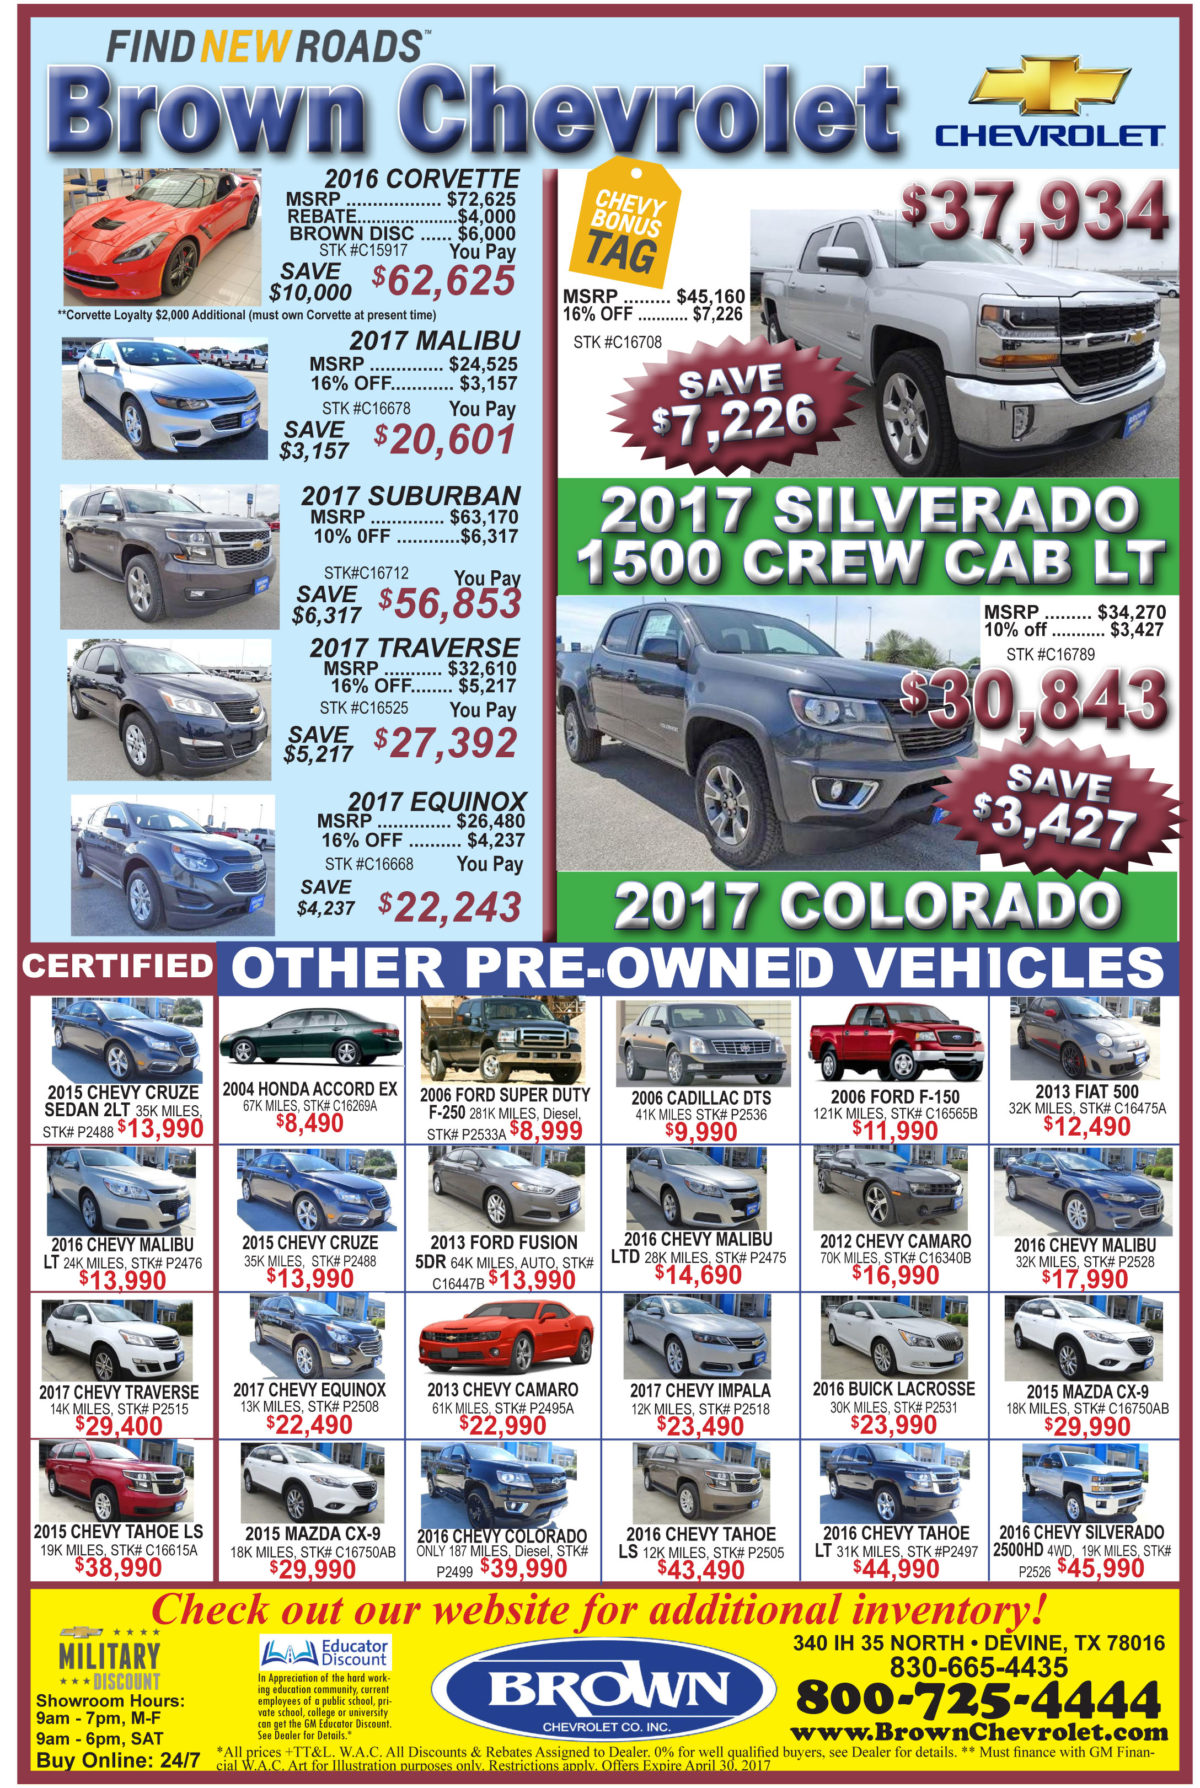 Brown Chevy deals for the week of 4-12-17